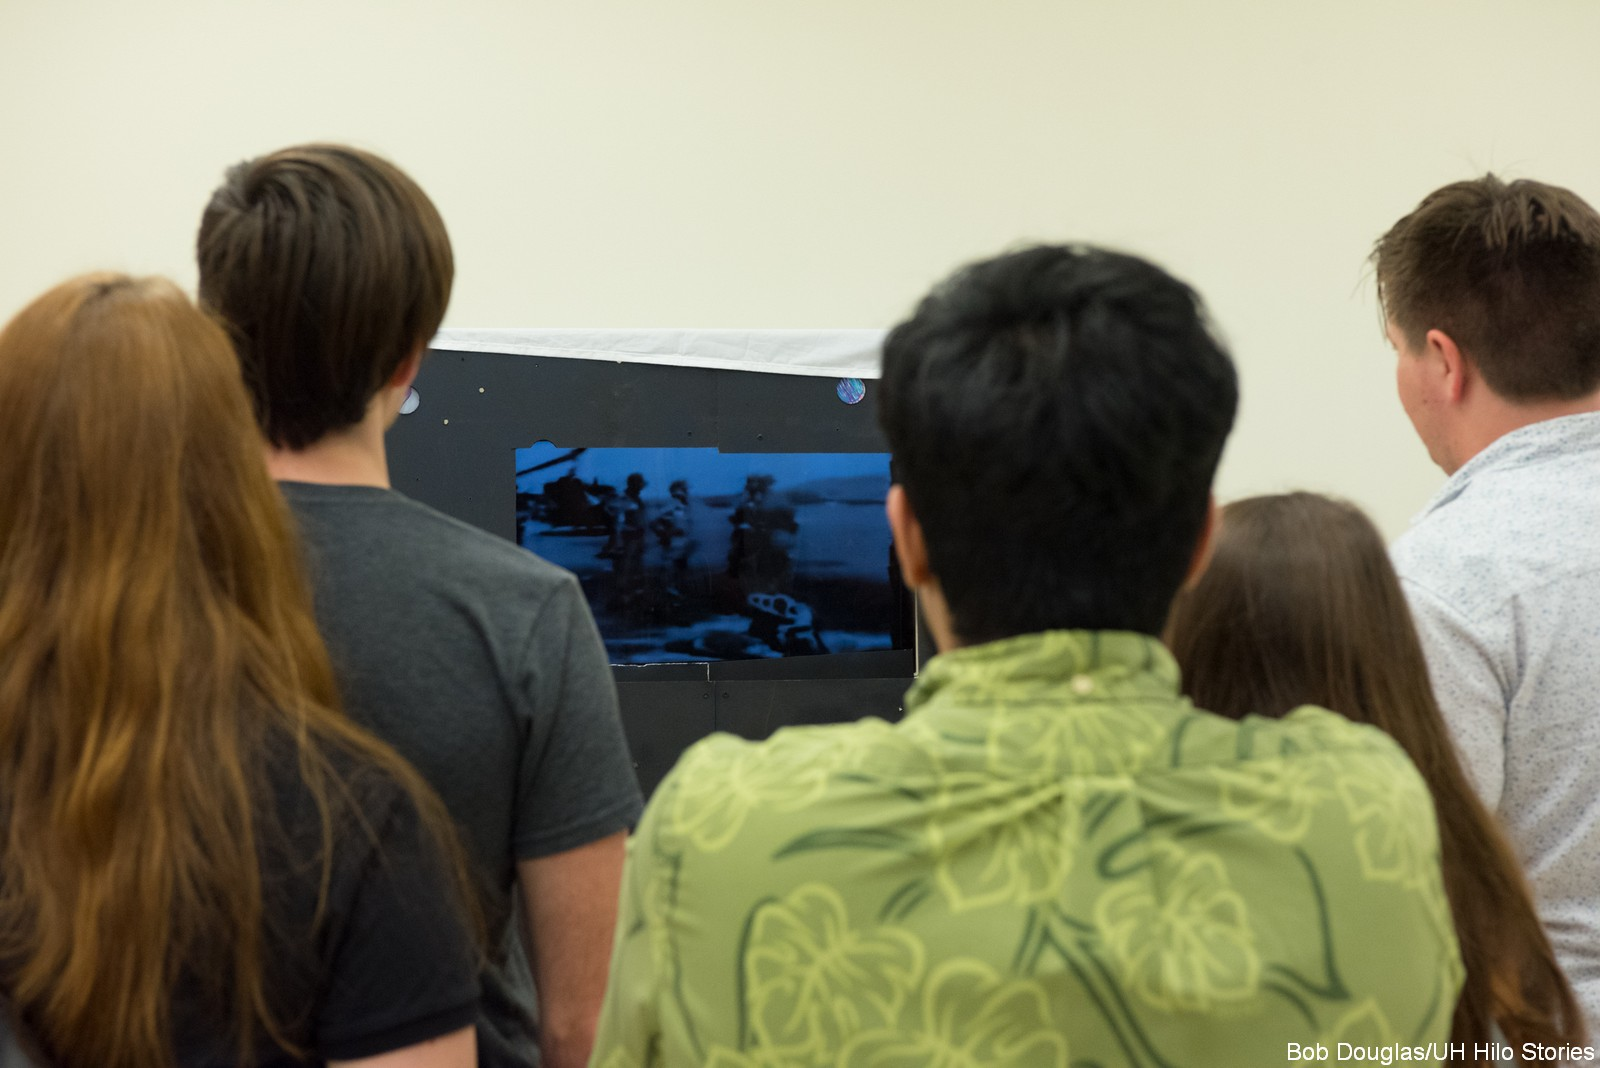 Group of students watch a television screen that is part of an art exhibit.